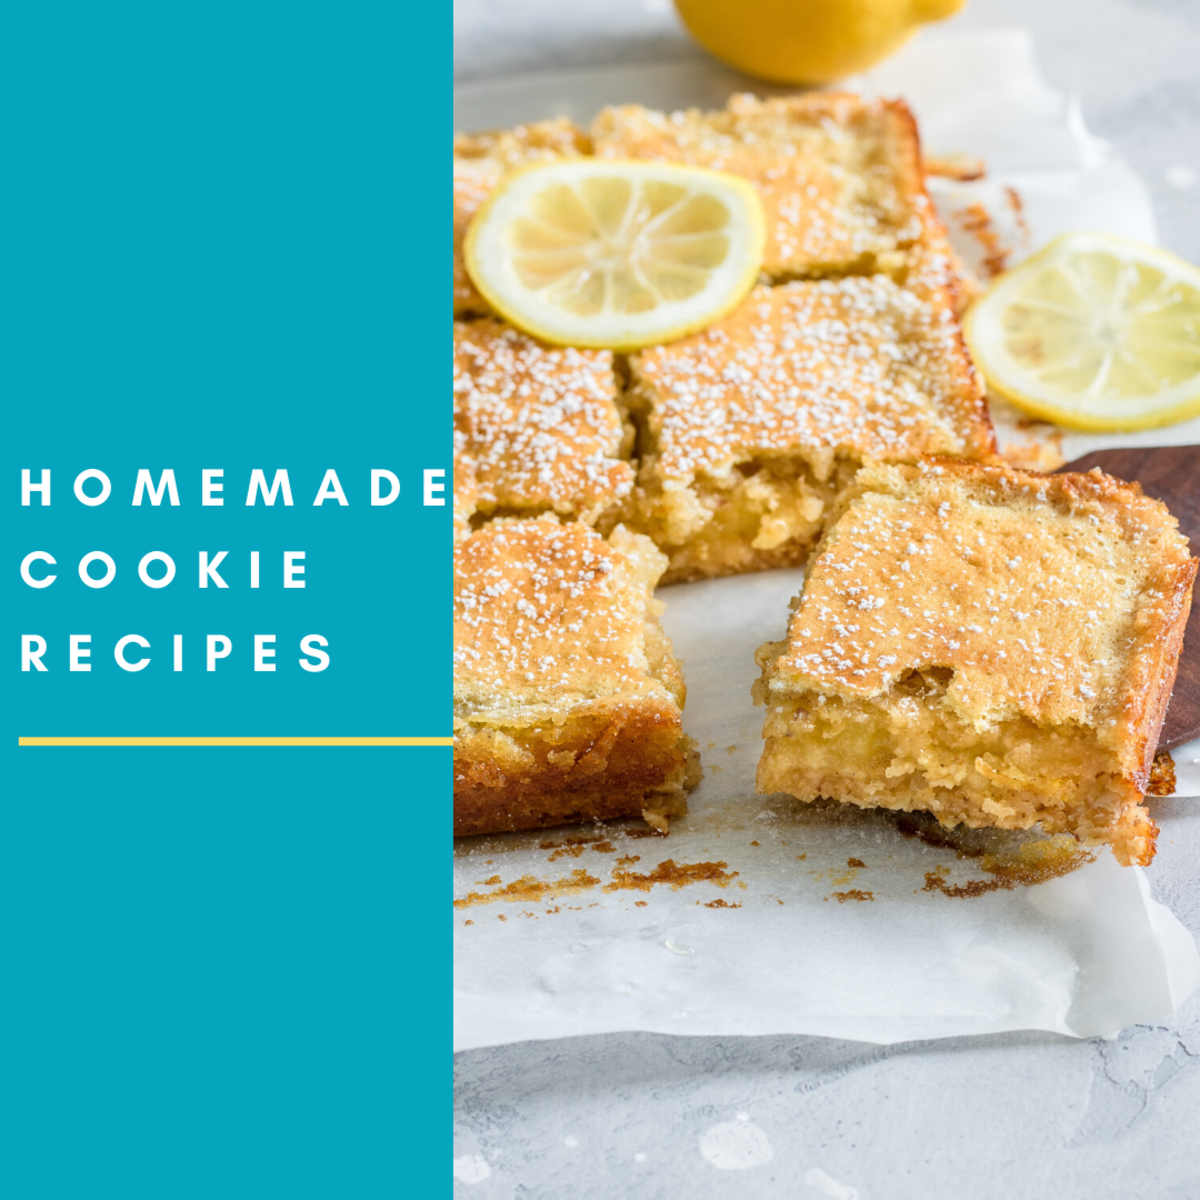 6 Favorite Homemade, Fresh-From-The-Oven Cookie Recipes